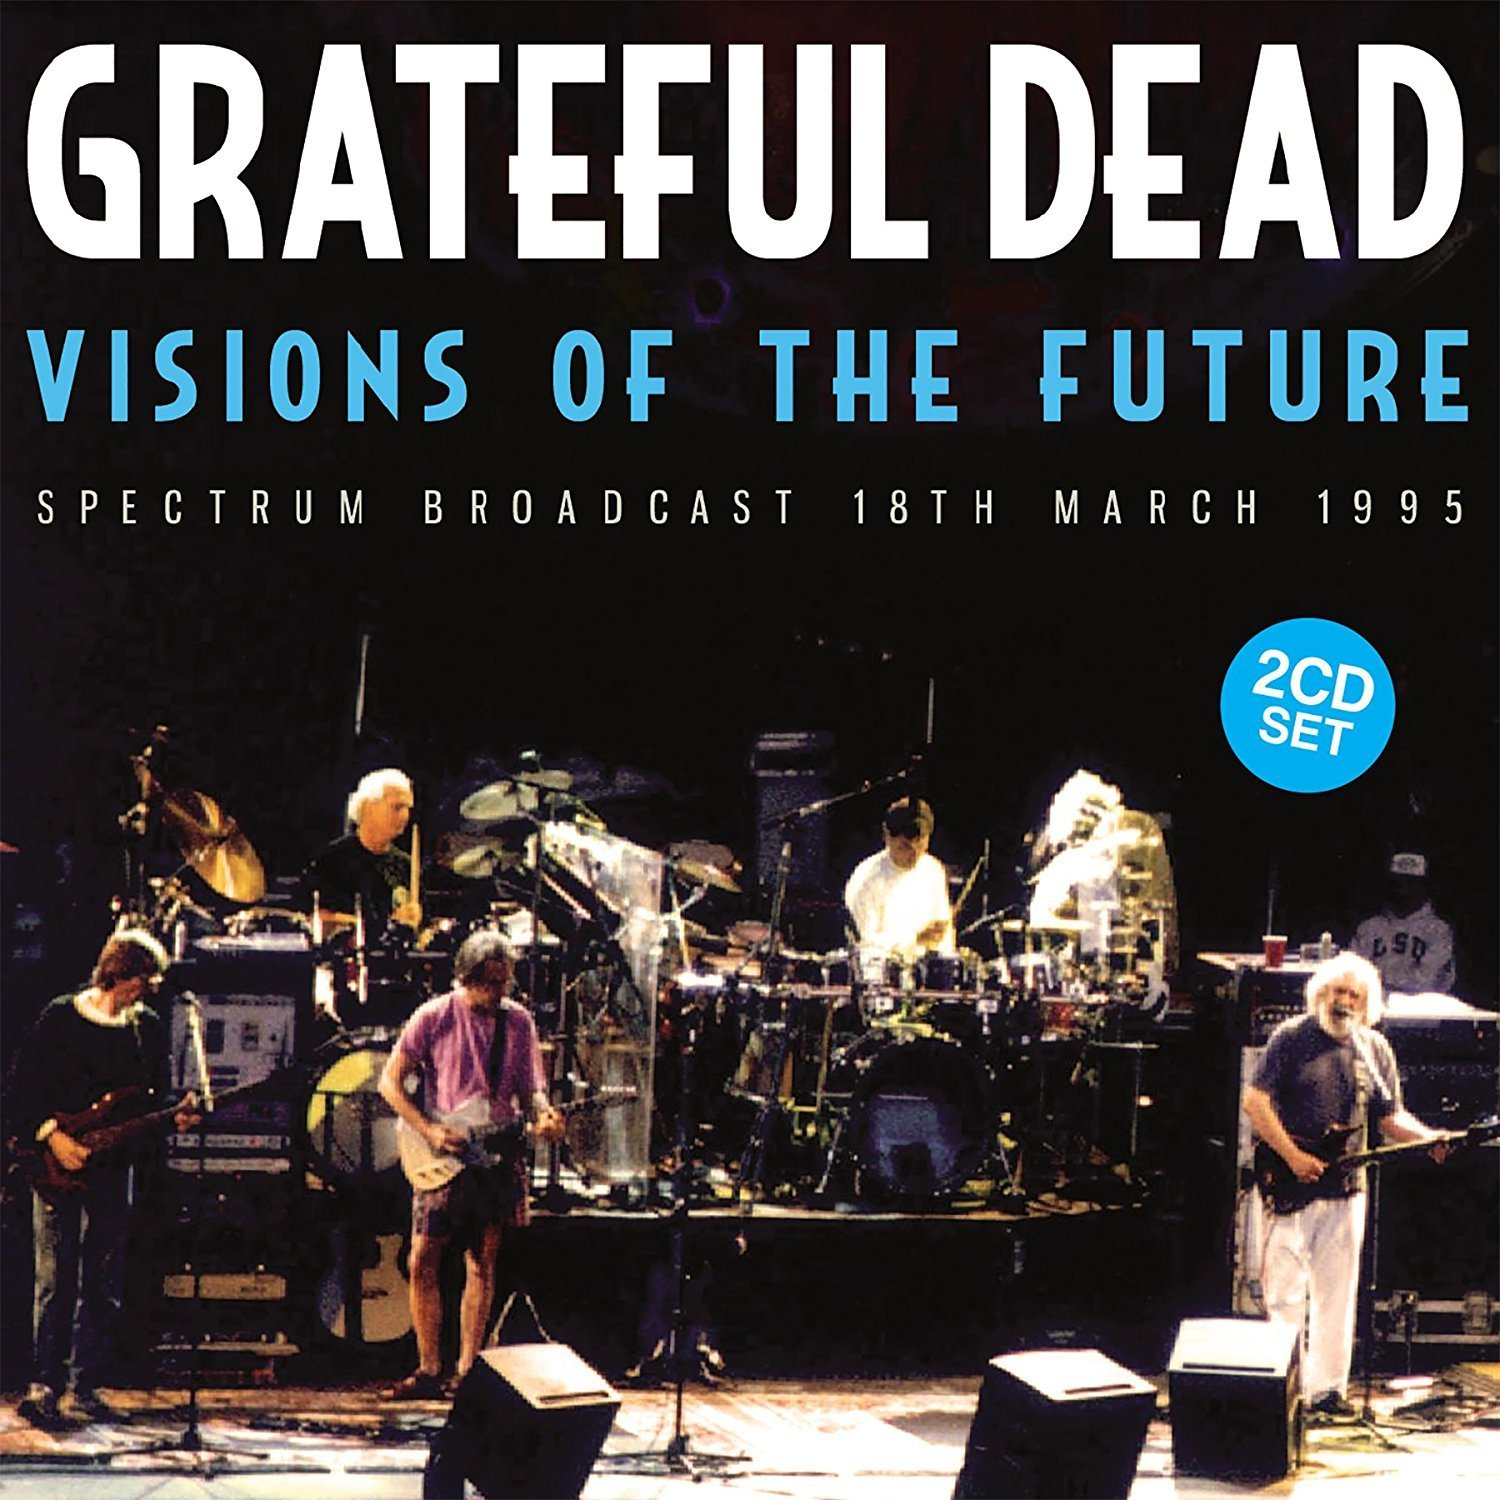 GRATEFUL DEAD - Visions Of The Future cover